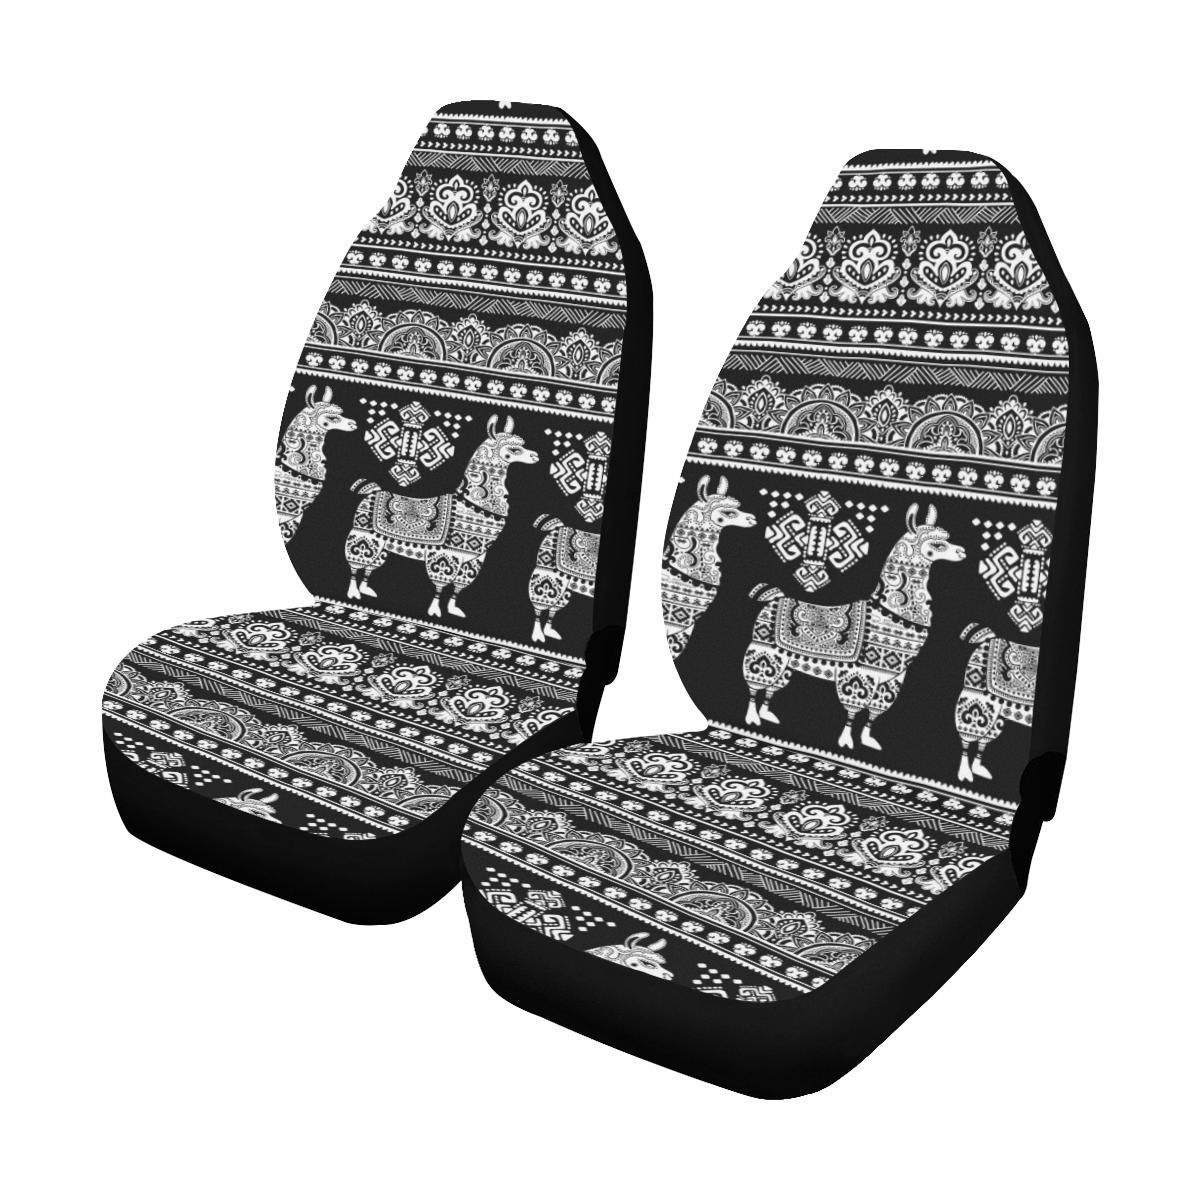 Llama Aztec Style Pattern Print Design 01 Car Seat Covers (Set of 2)-JORJUNE.COM